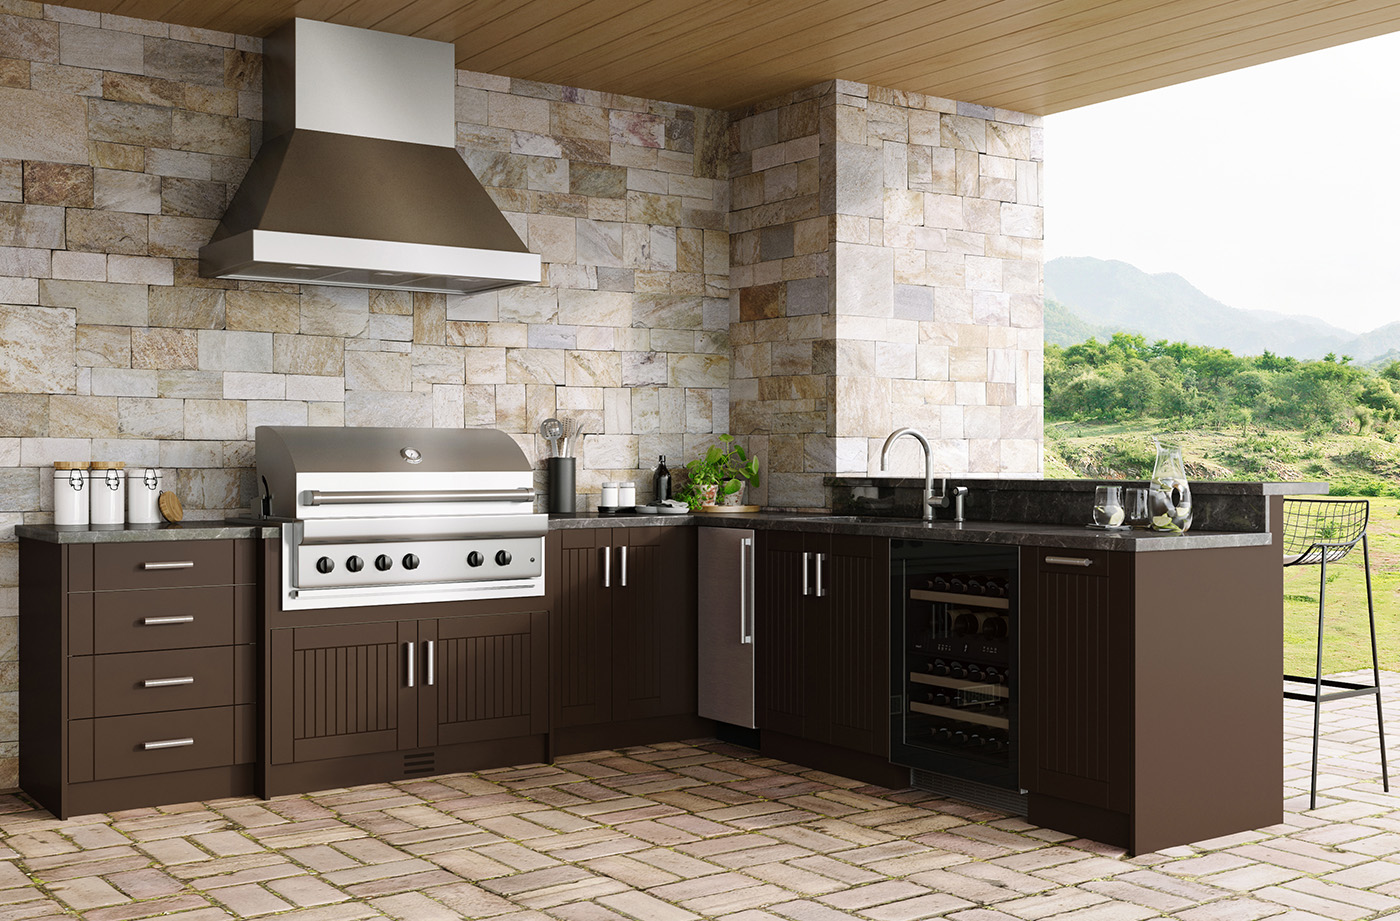 Costco Weatherstrong Outdoor Cabinetry